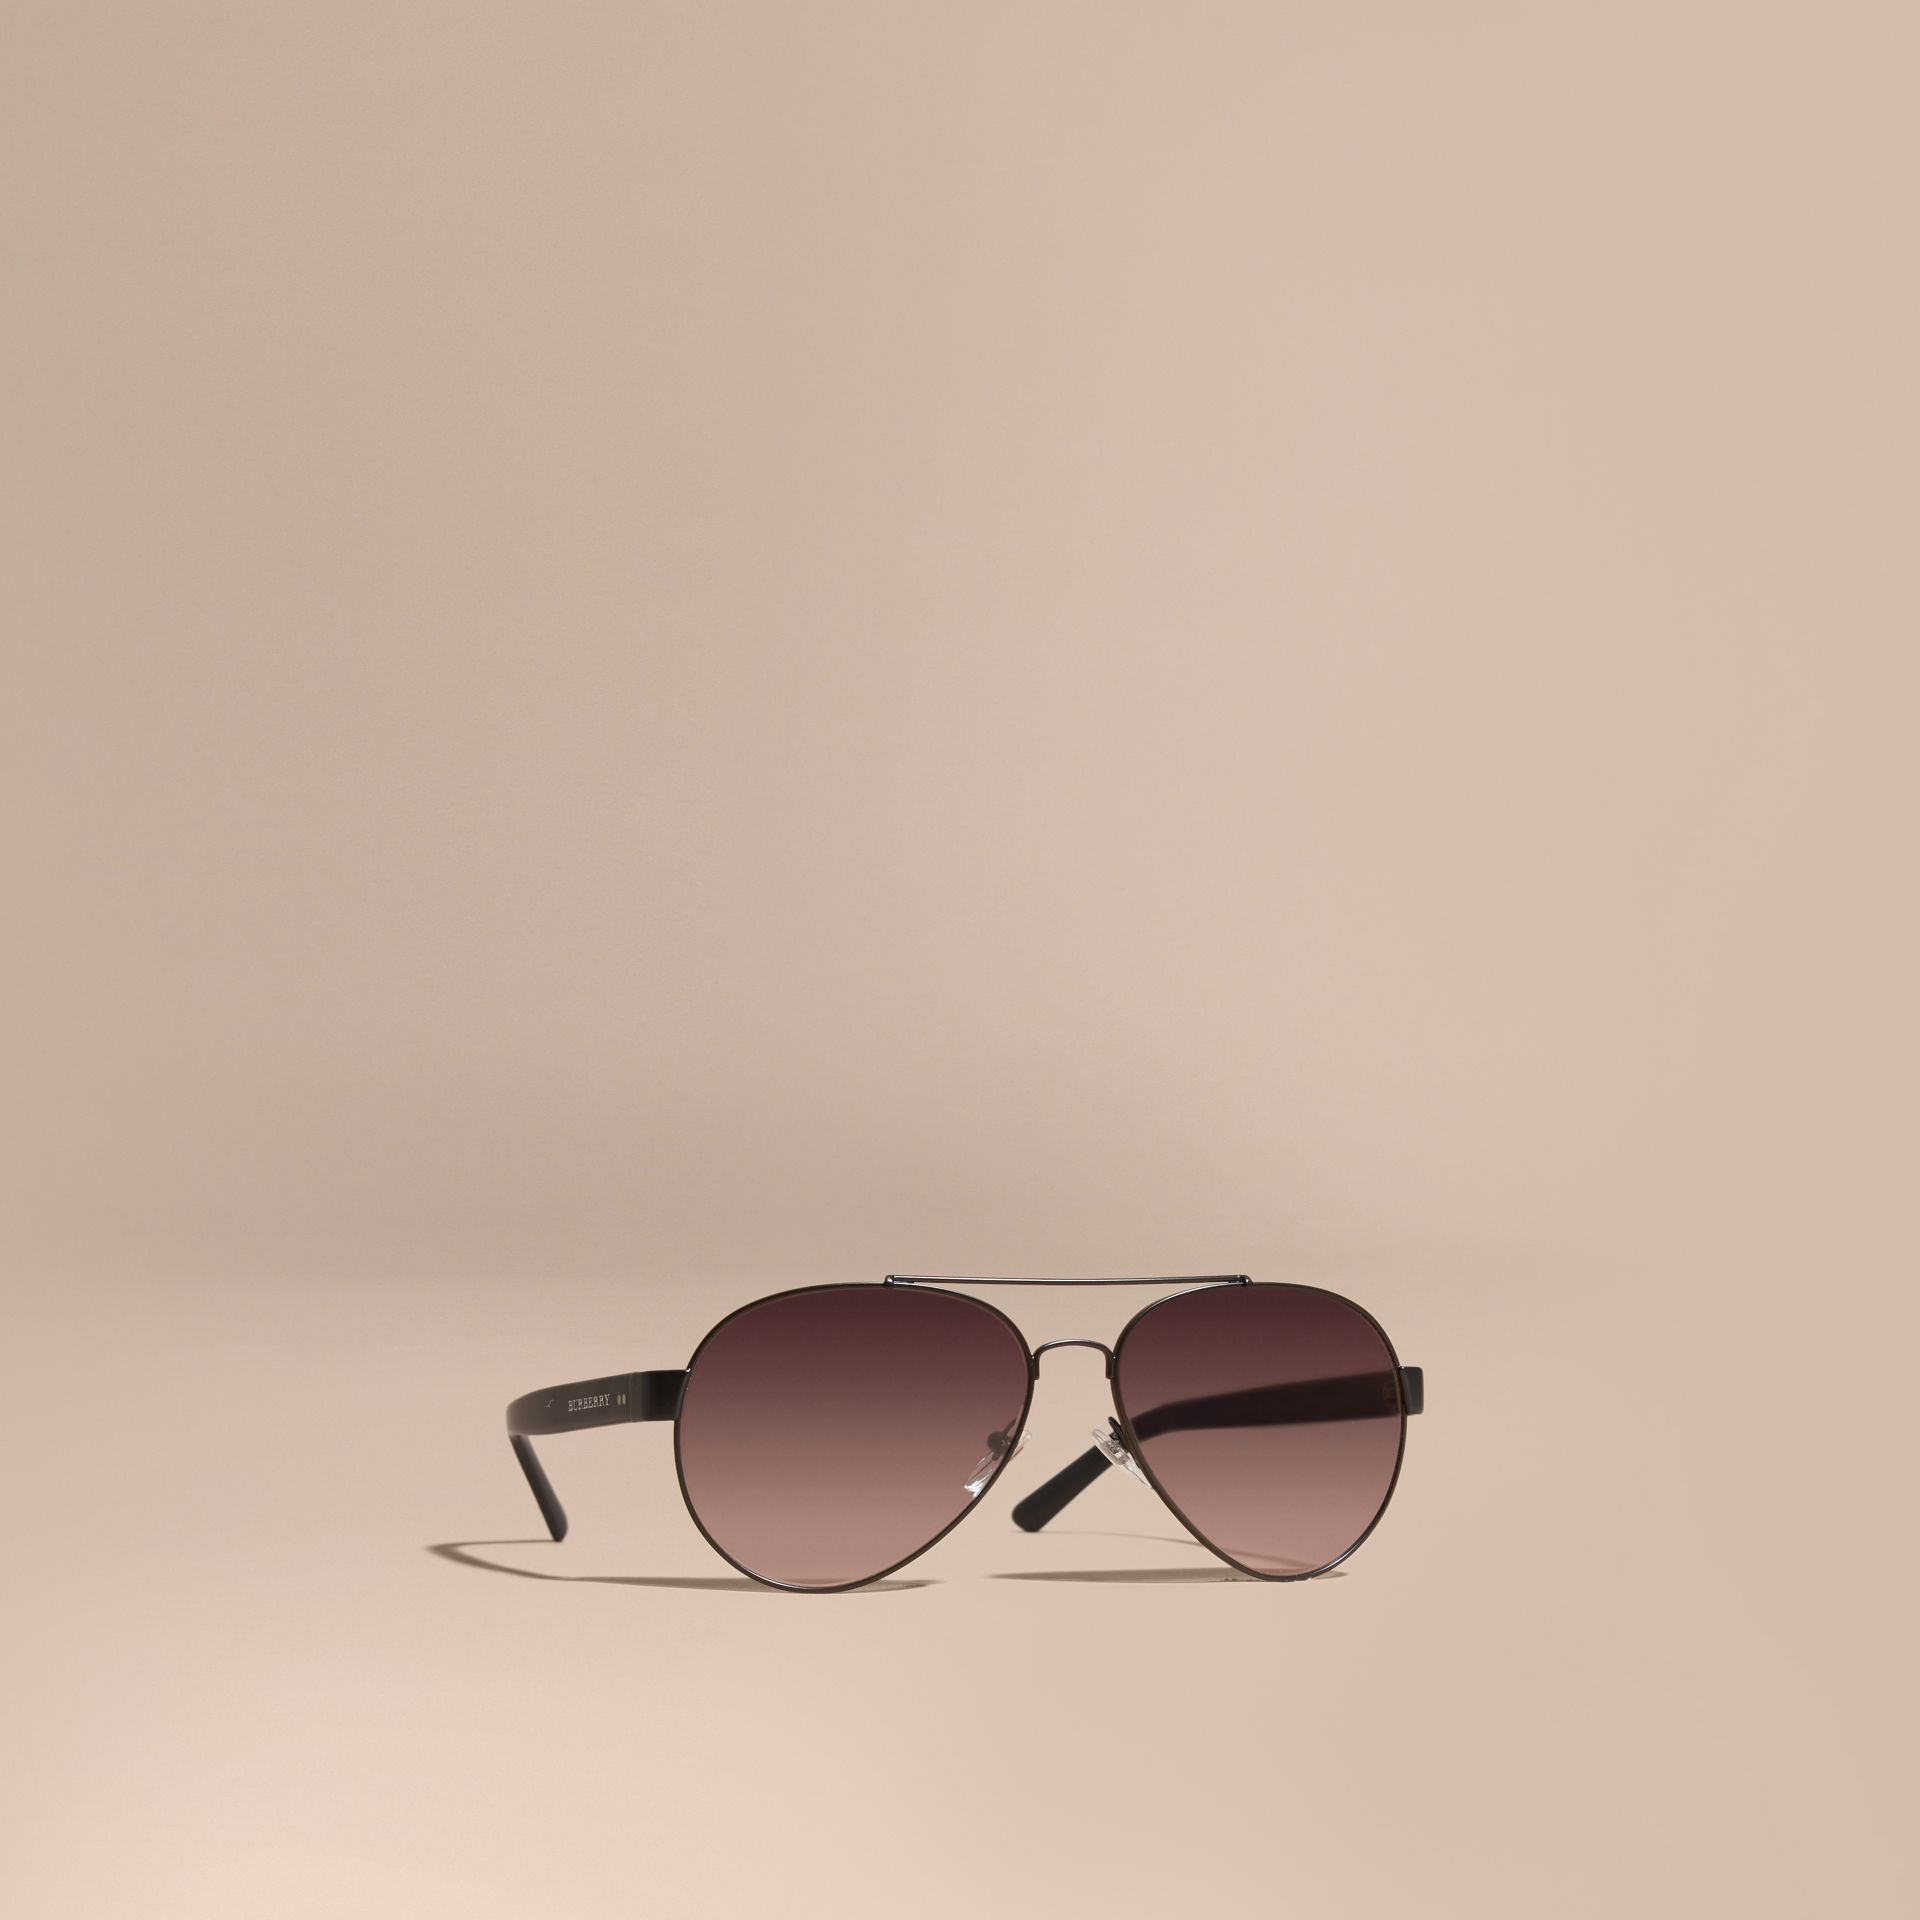 Pilot Sunglasses in Black - Men | Burberry - gallery image 1